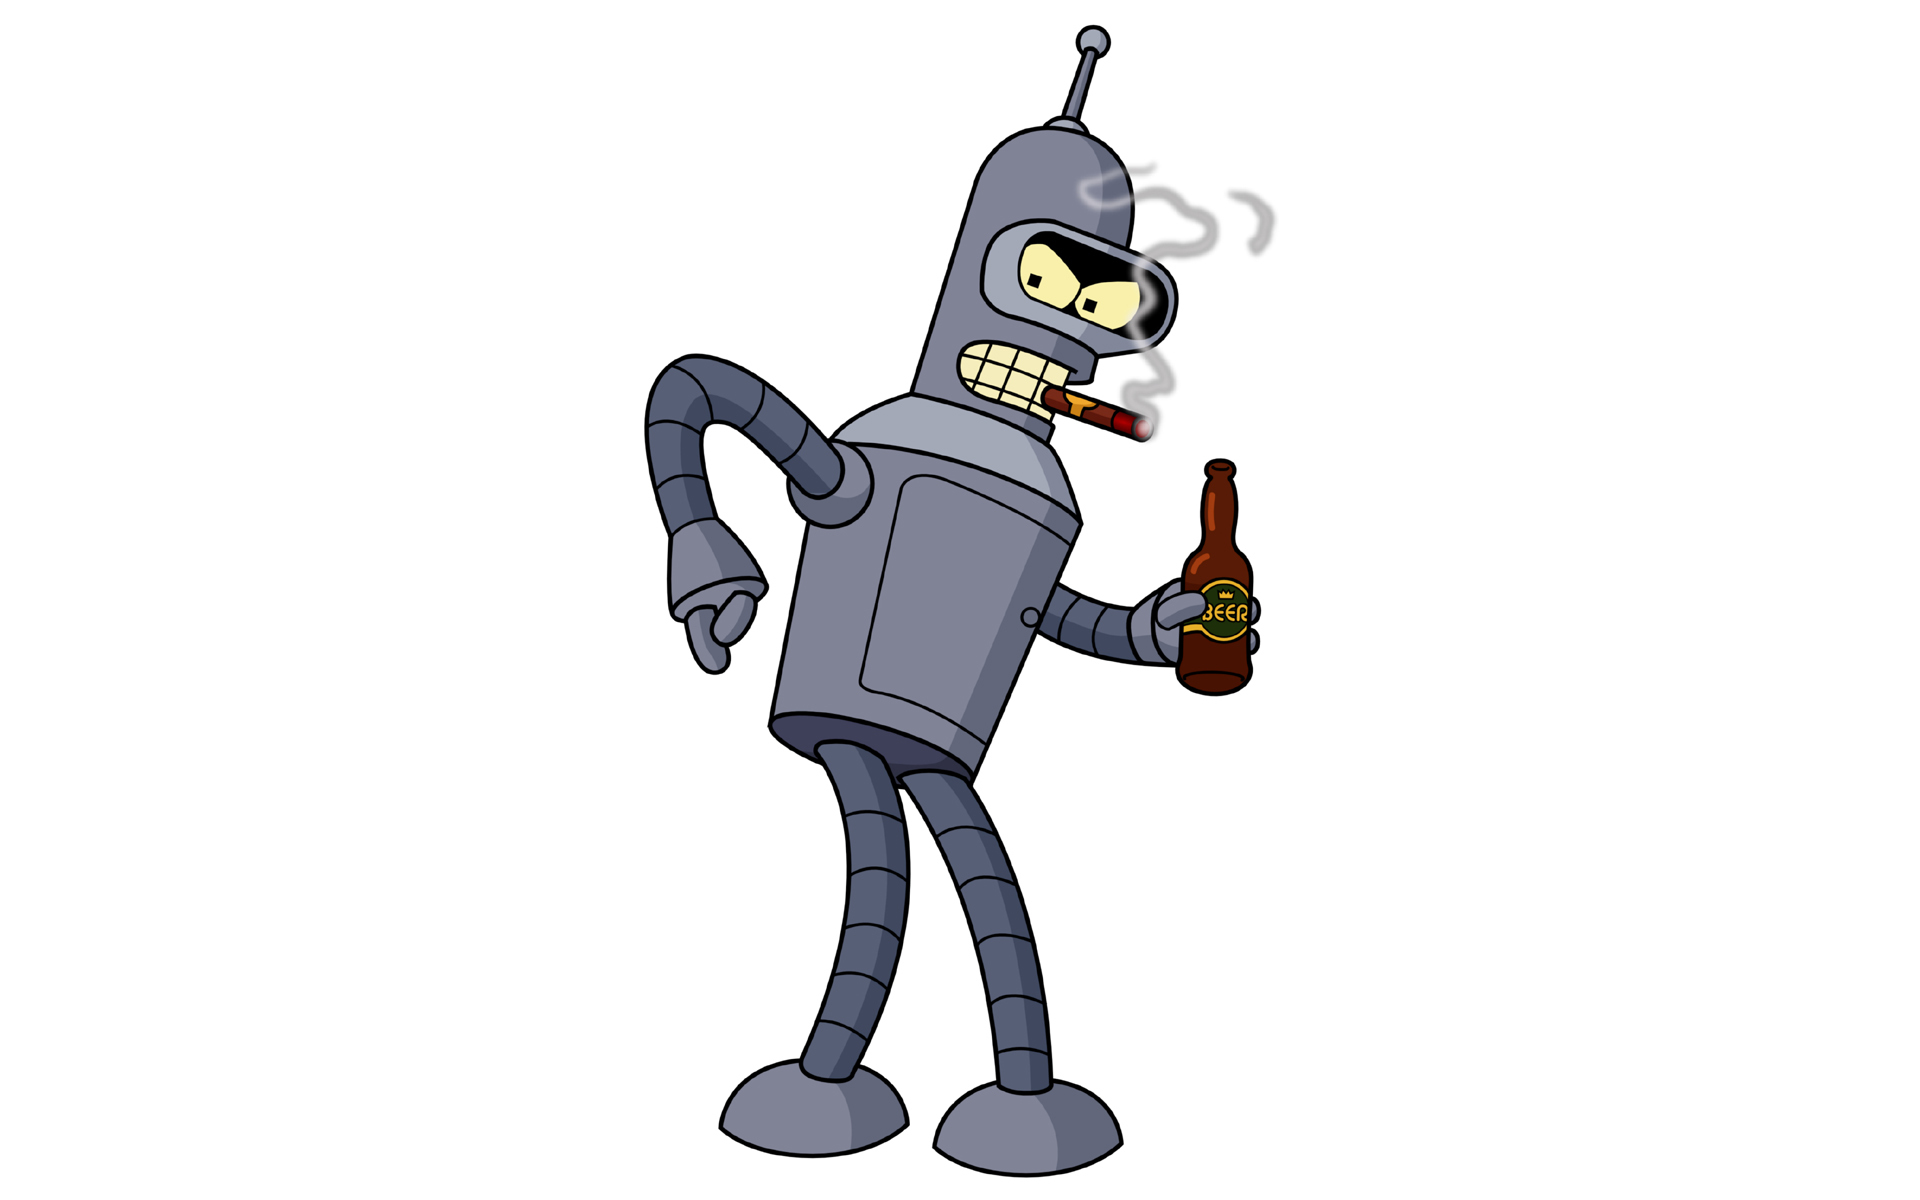 Futurama Bender Robots HD Wallpaper